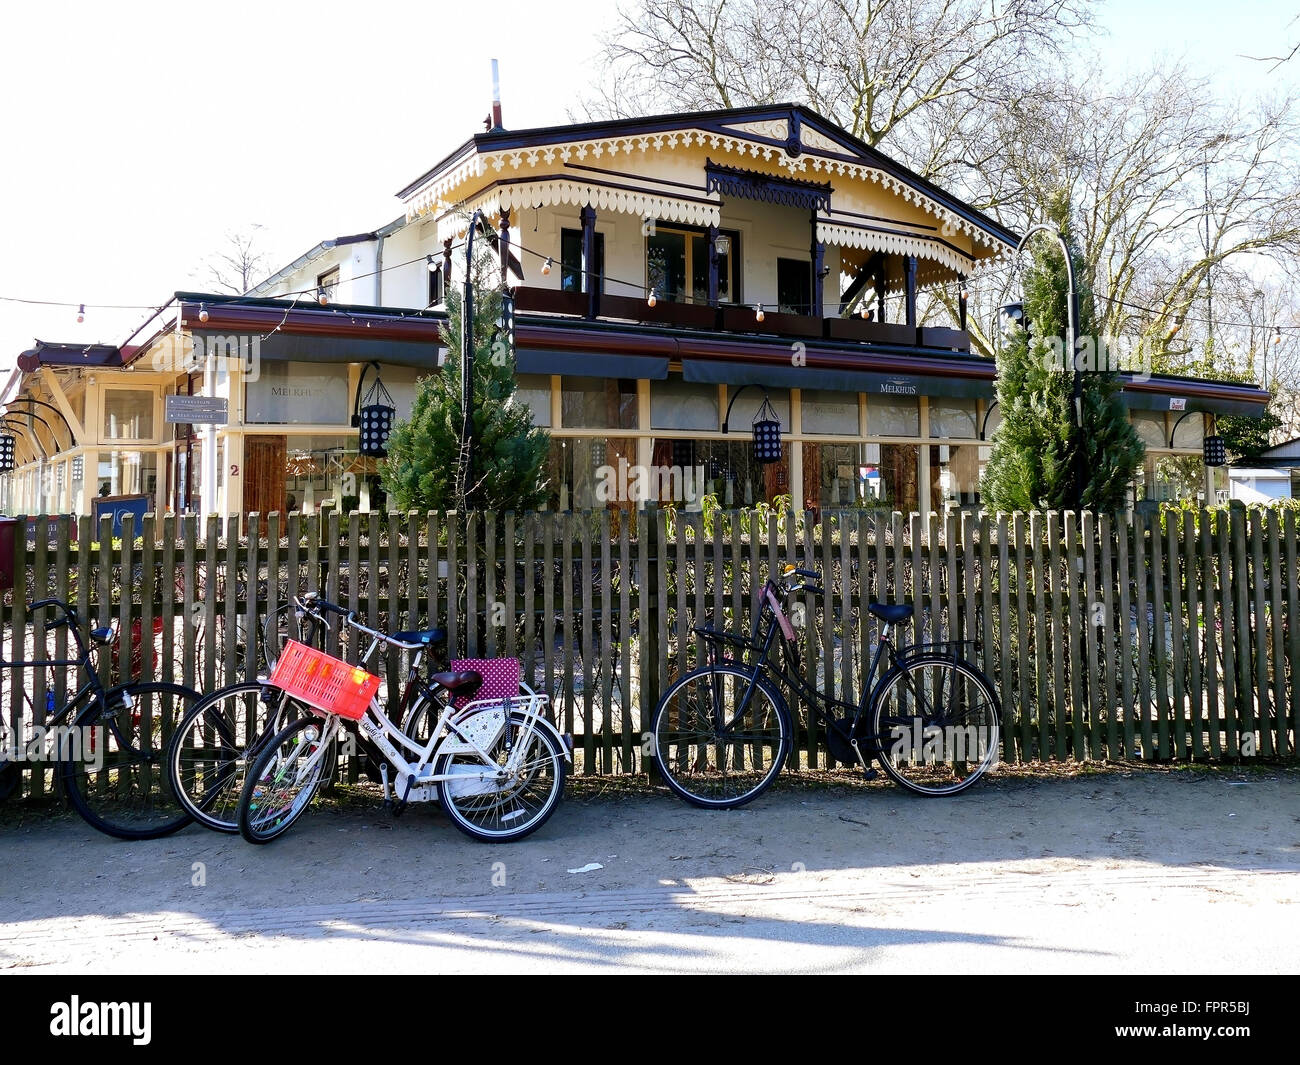 Cafe Groot Melkhuis in Vondelpark on a sunny cold day. Typical Dutch bikes are parked at fence - Stock Image